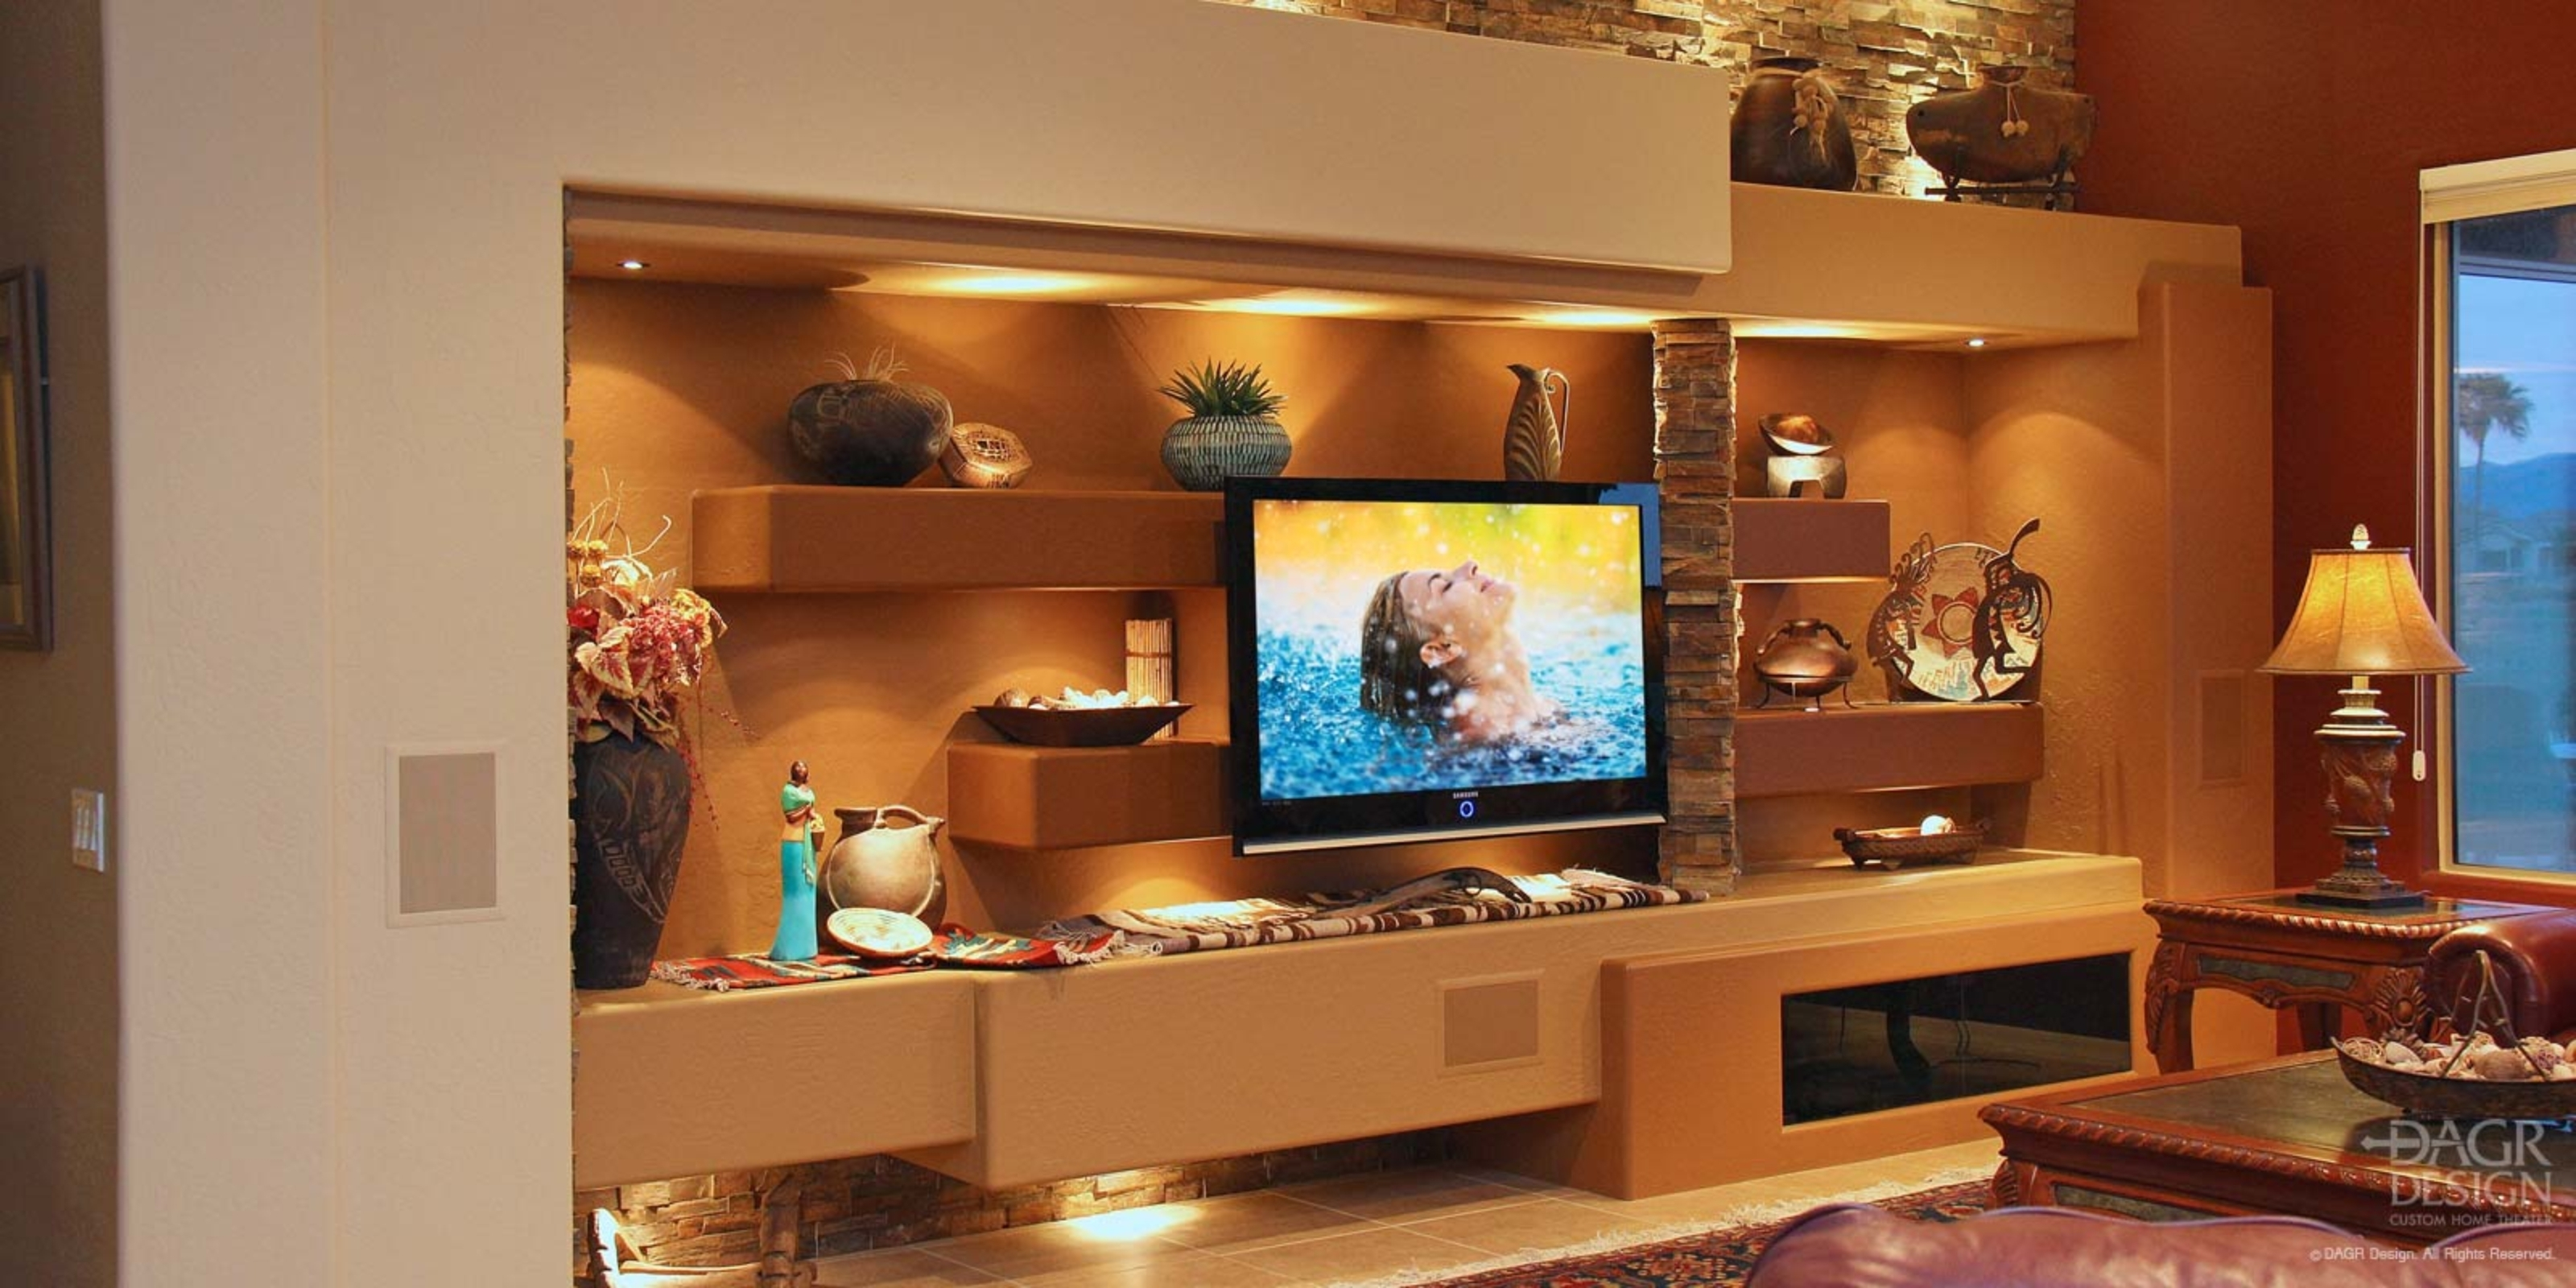 Custom Media Wall & Home Entertainment Center Design • Dagr Design With Regard To Most Current Wall Accents For Media Room (View 8 of 15)